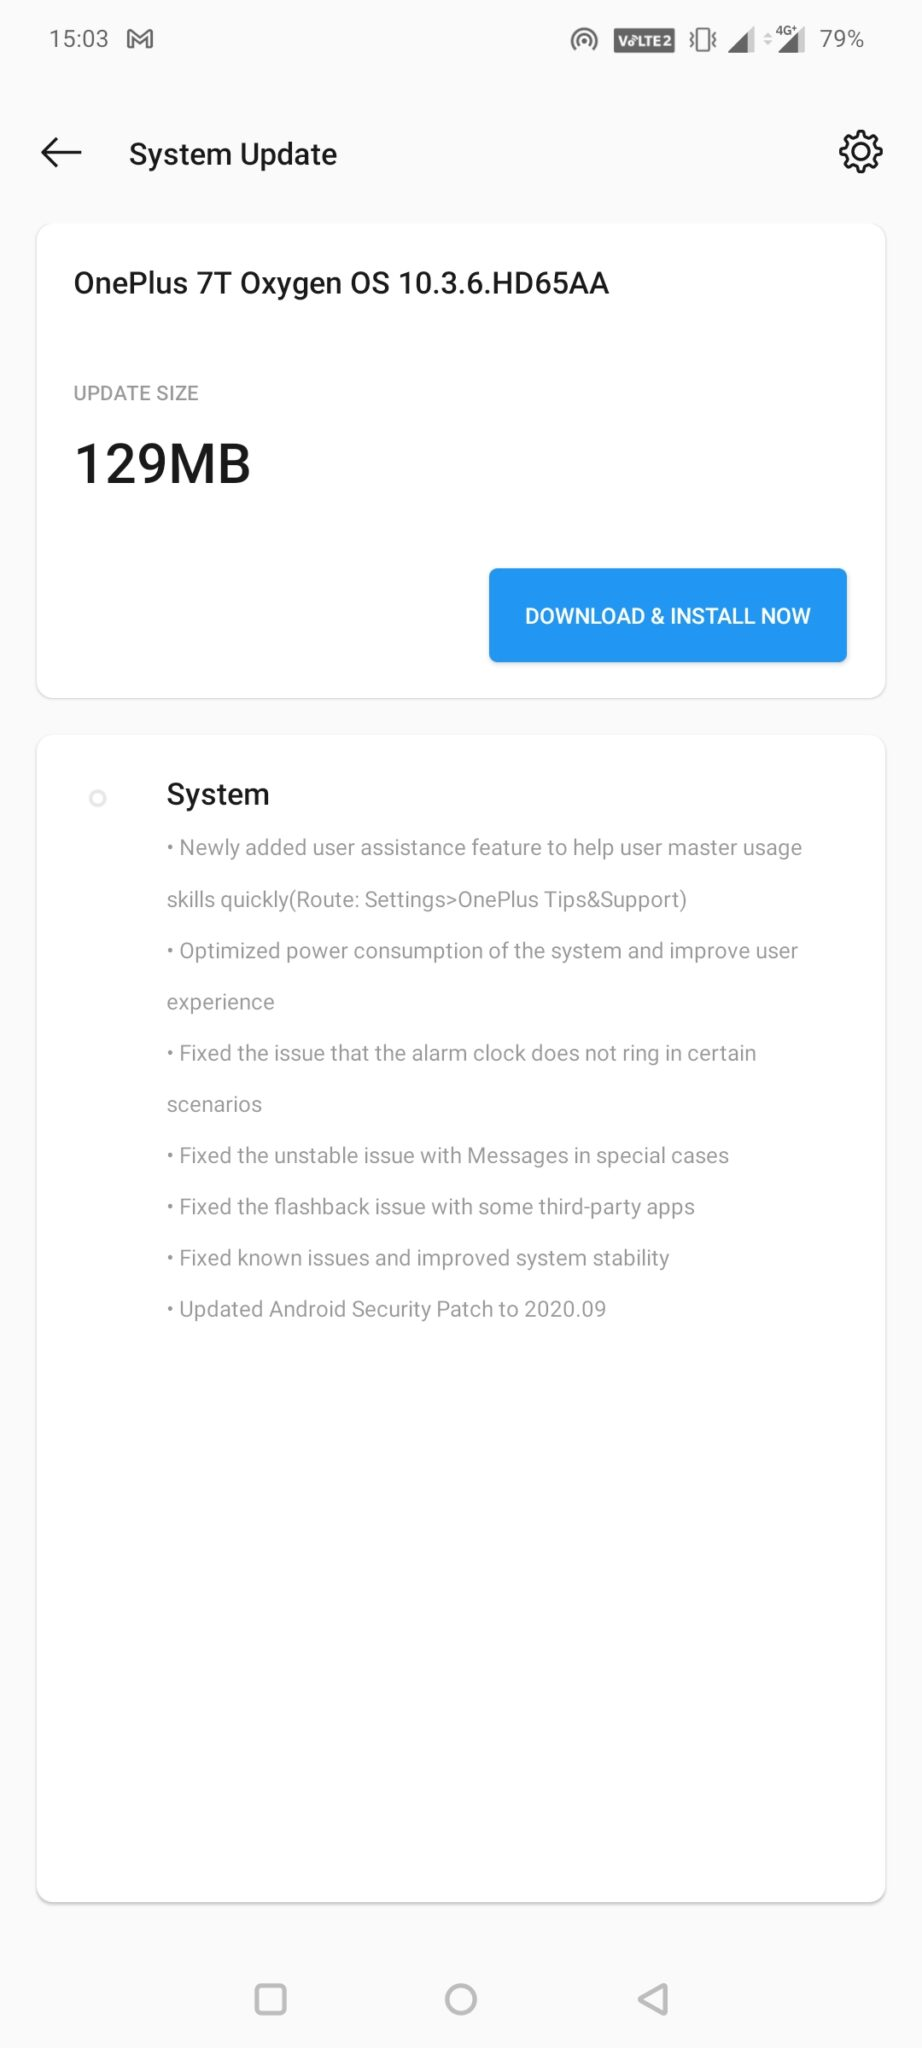 OxygenOS 10.0.14 and 10.3.6 (India)update for the OnePlus 7T phones